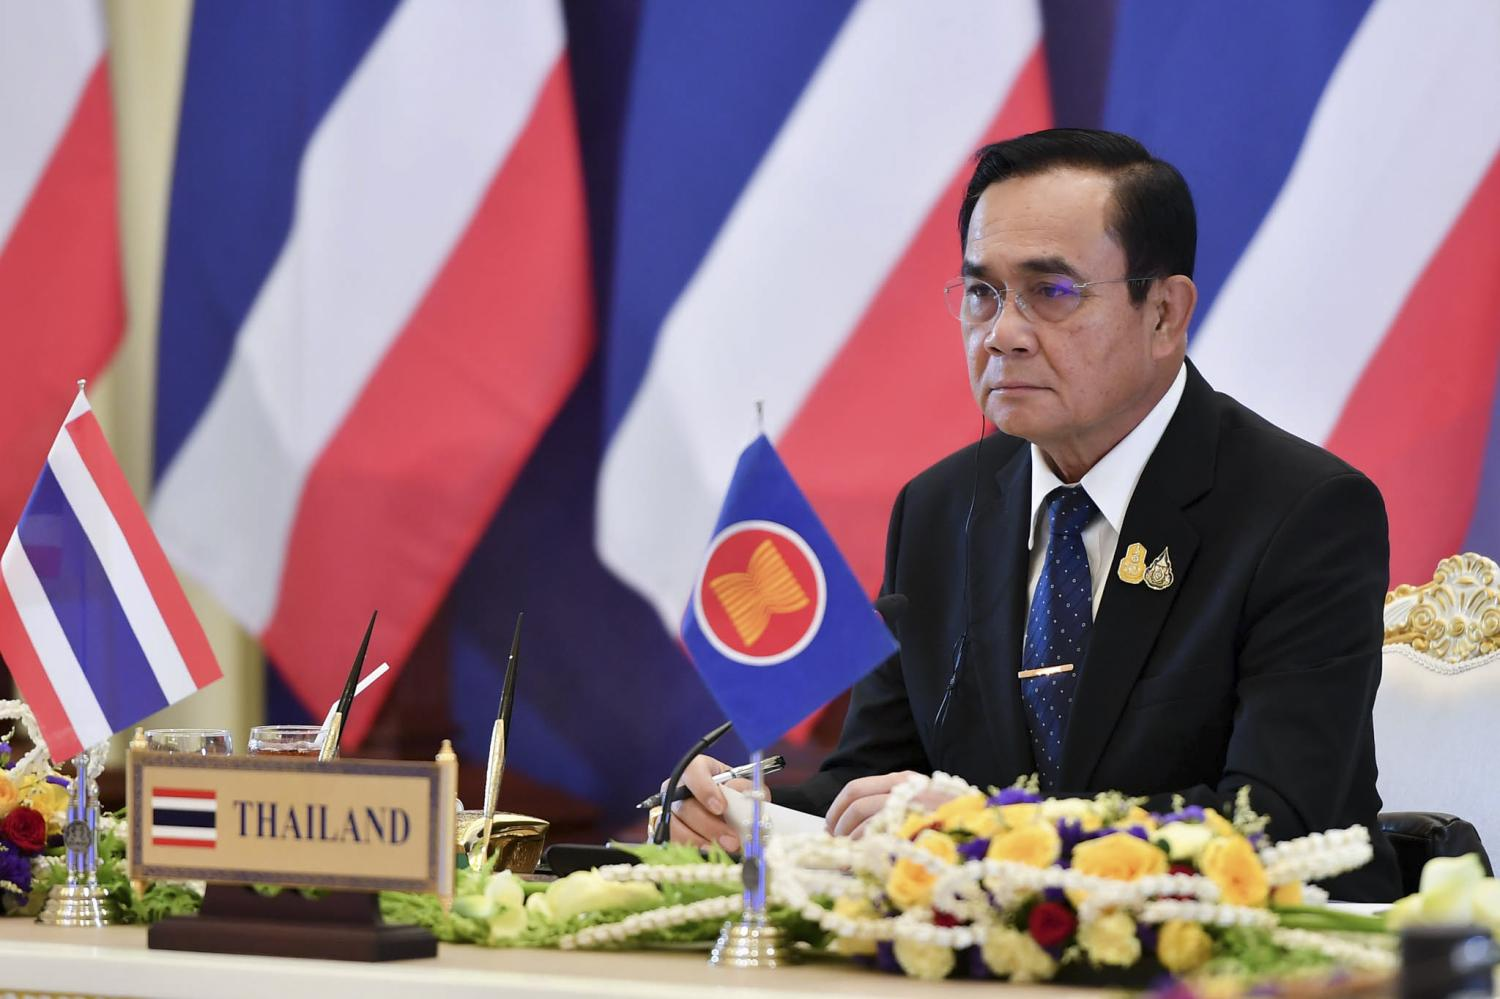 Prime Minister Prayut Chan-o-cha joins the Vietnam-hosted 36th Asean Summit and related meetings via video conference at Government House on Friday. (Government House photo)